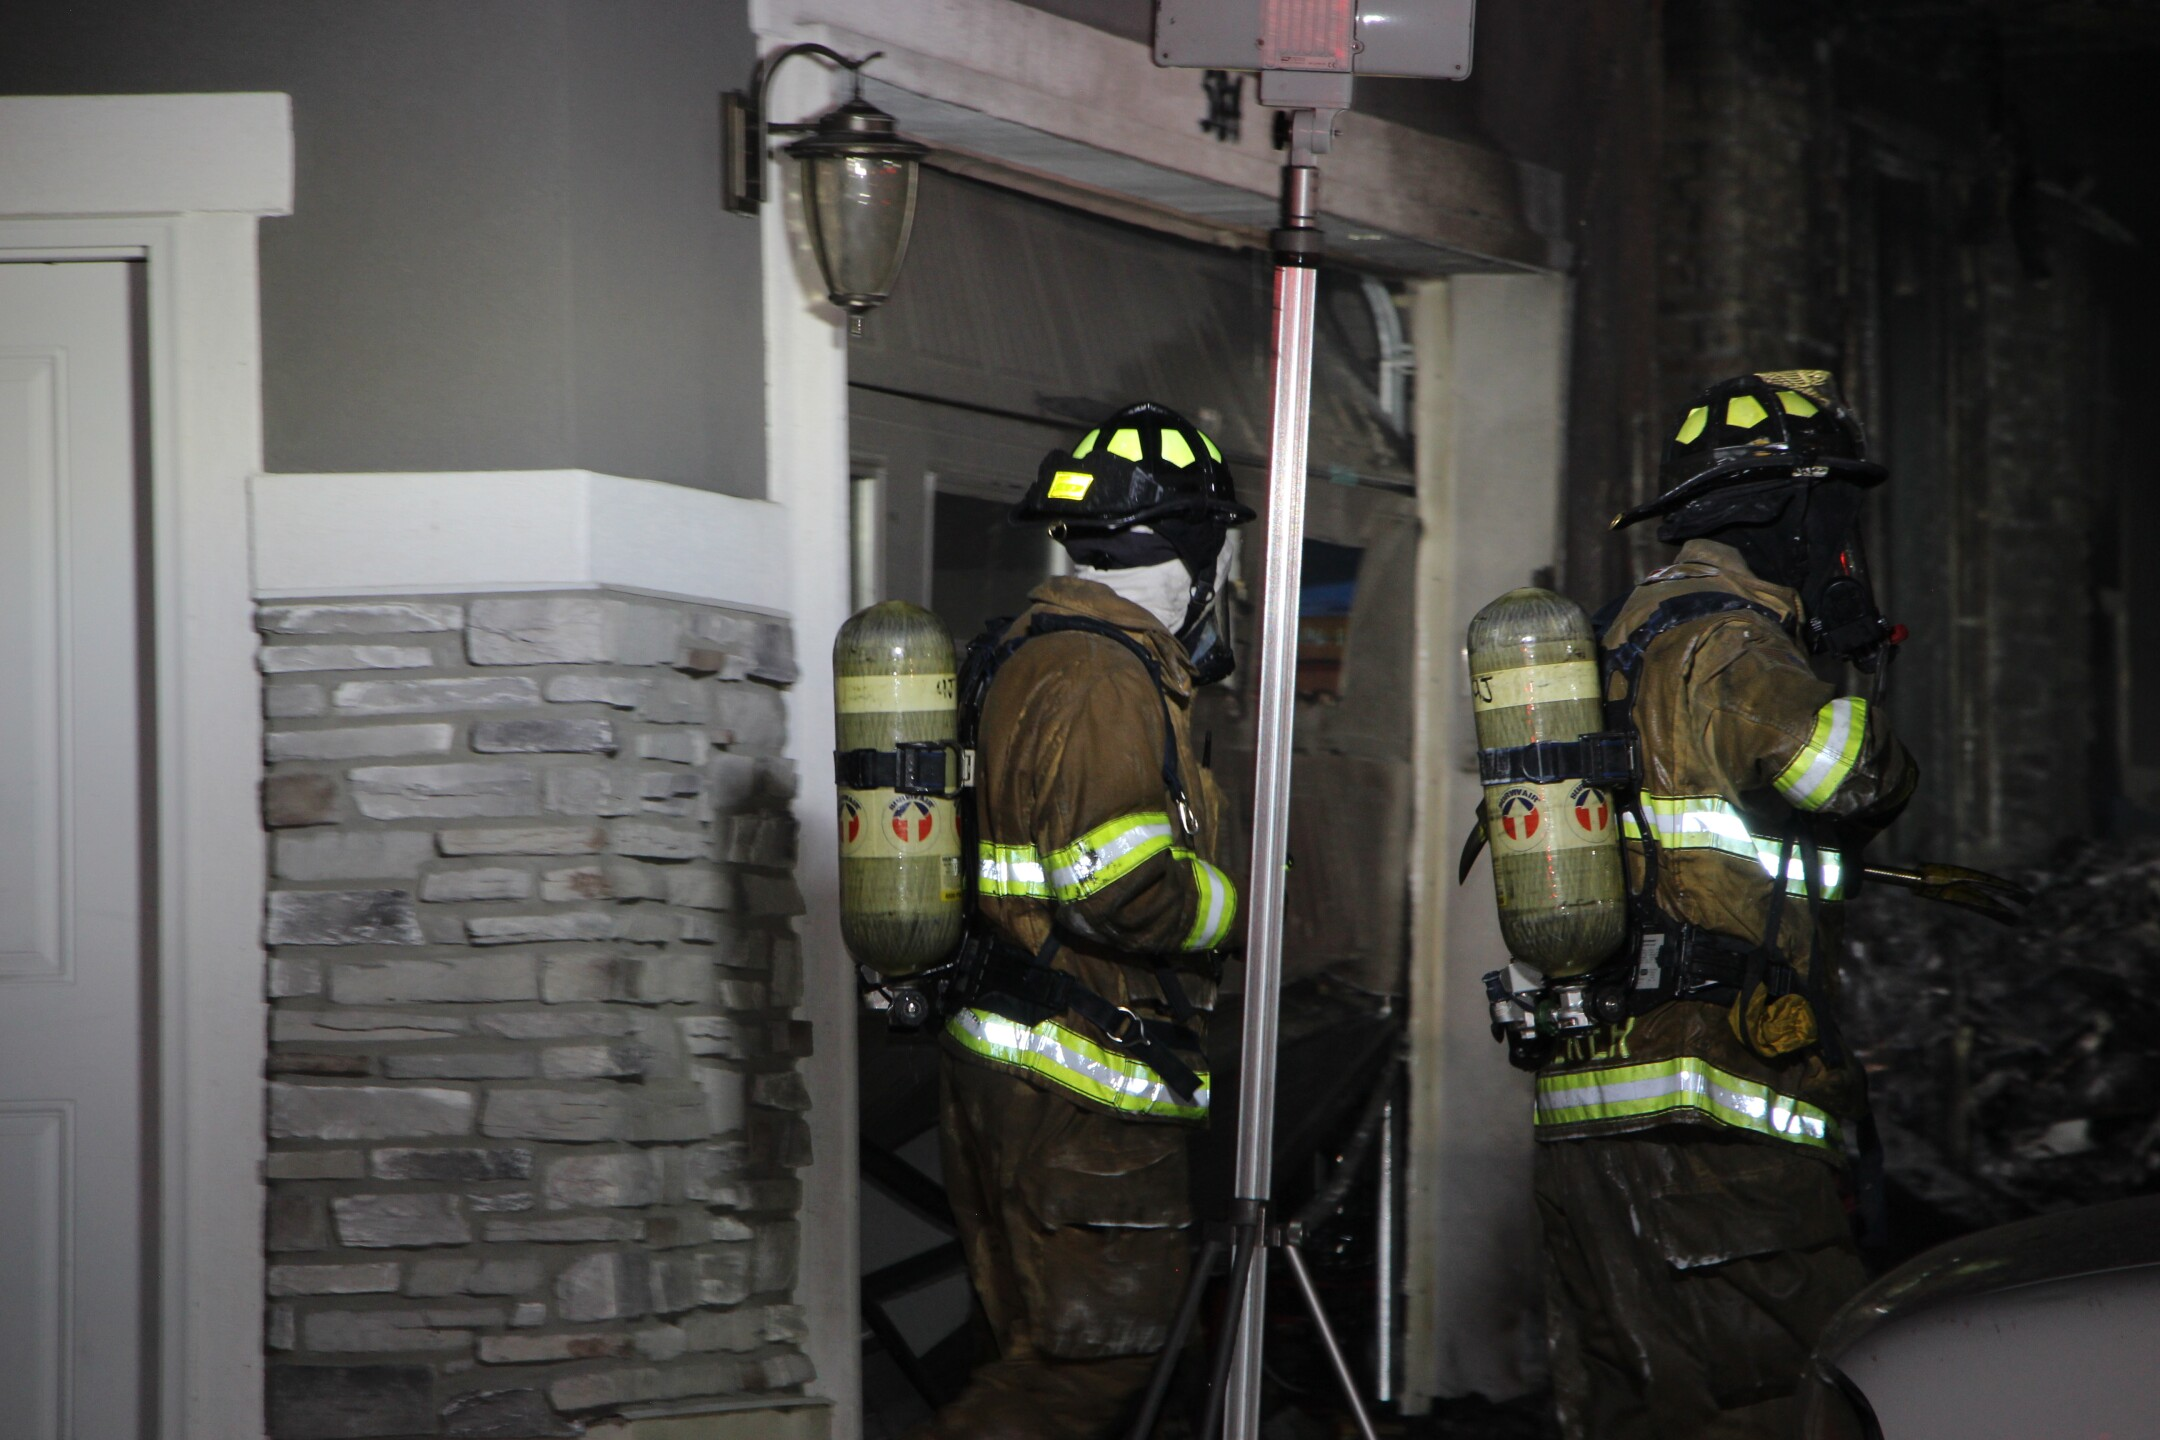 Photos: Police: pilot killed in Utah County crashed aircraft into his own home after arrest for domesticviolence